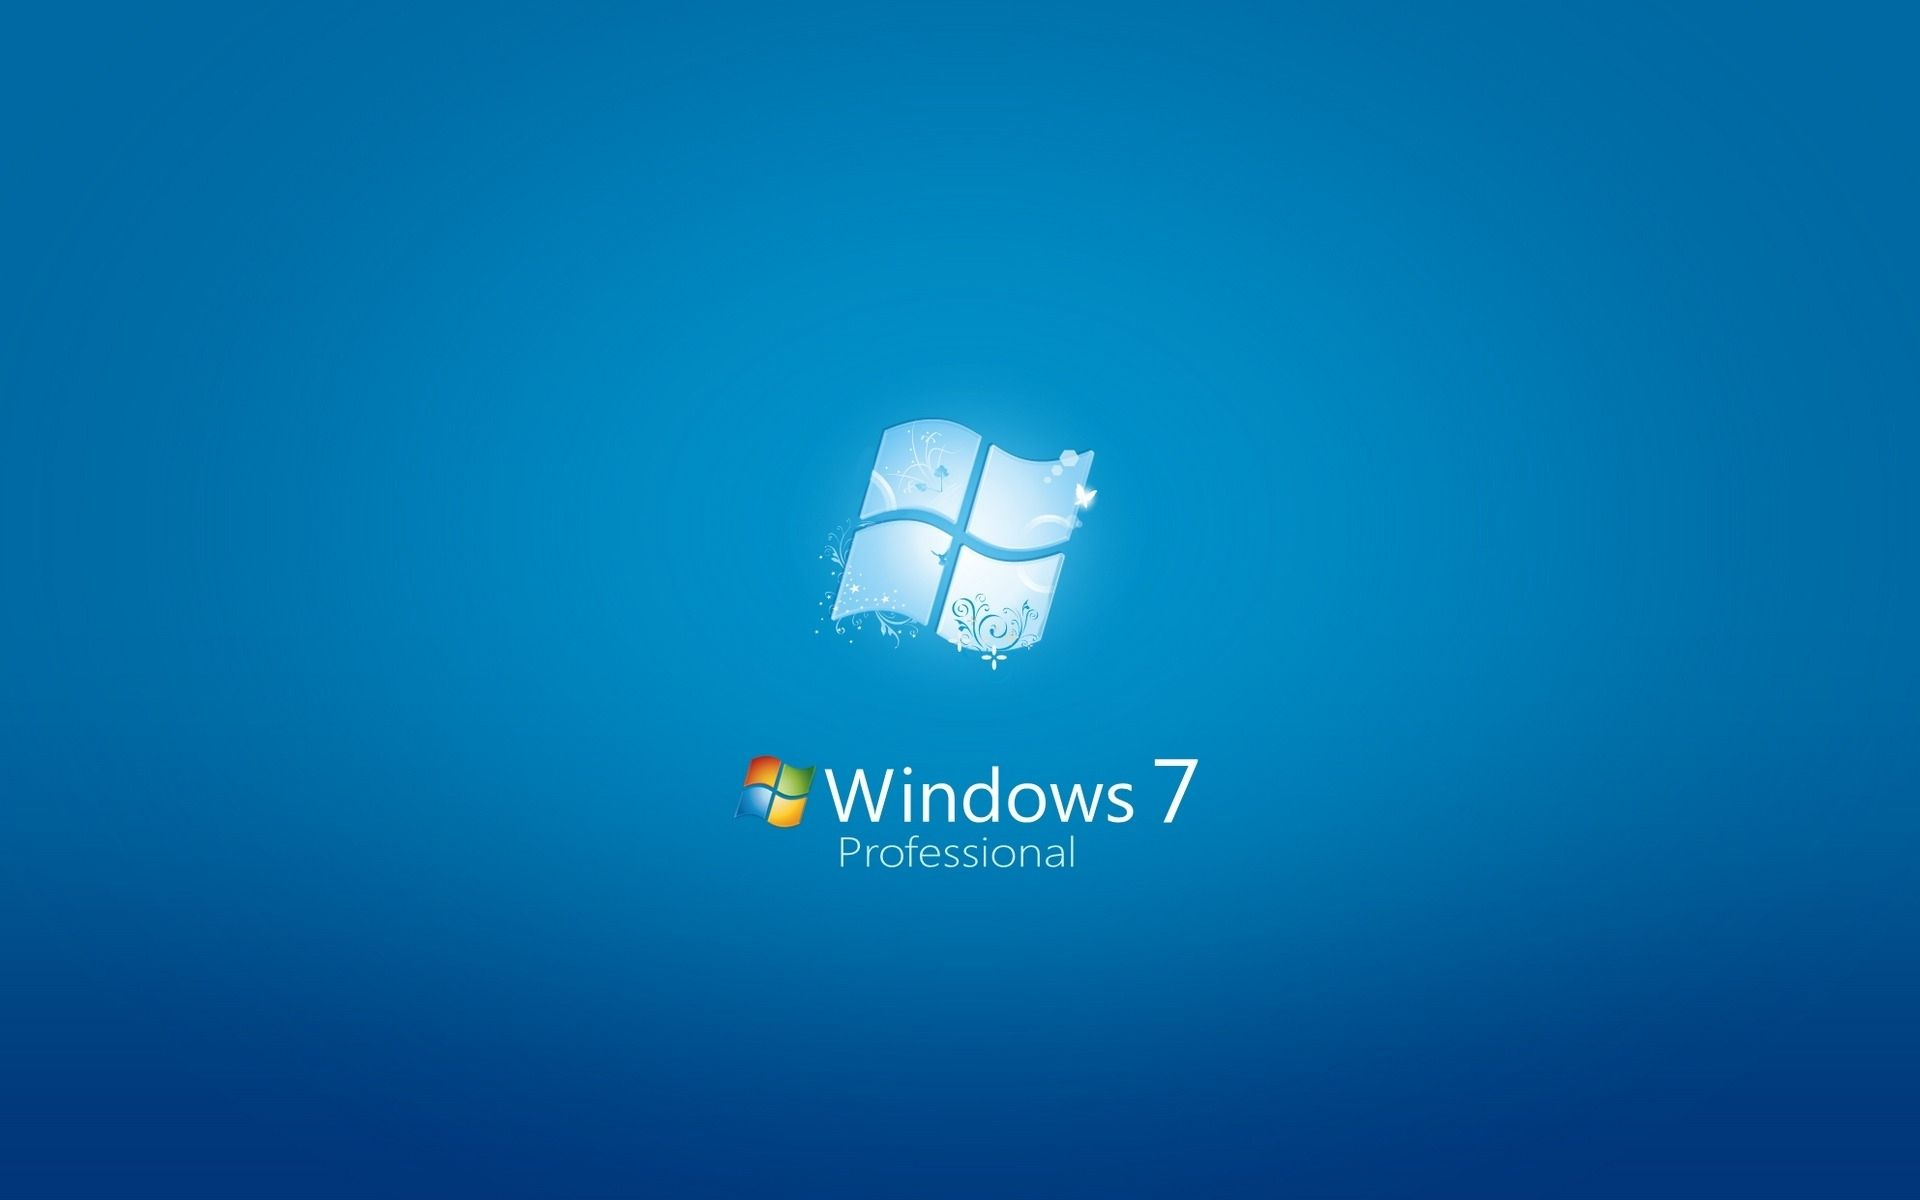 10 Top Windows 7 Wallpapers Hd Full Hd 1080p For Pc Desktop Windows Wallpaper Free Desktop Wallpaper Desktop Wallpaper